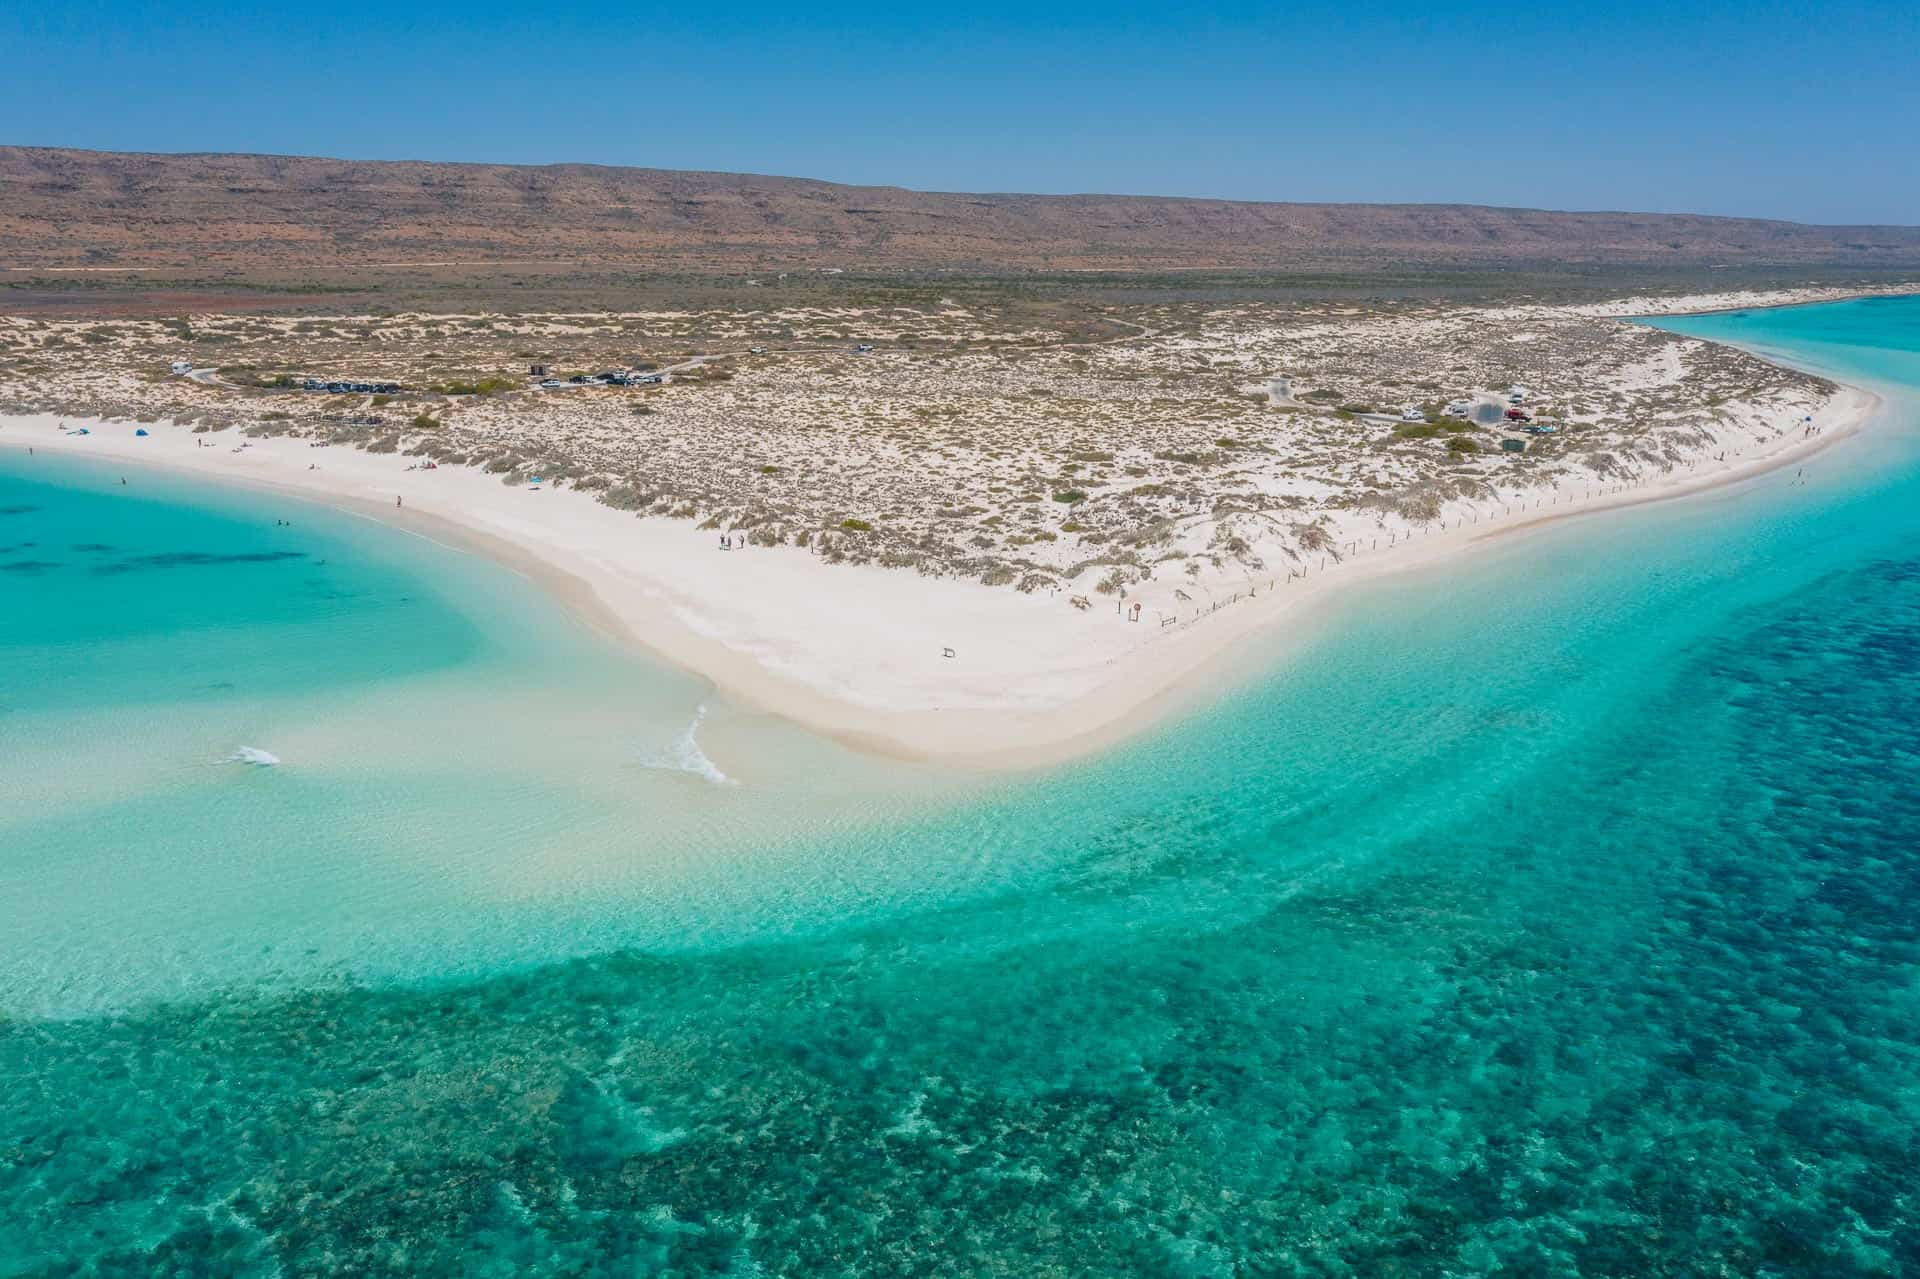 things to do in exmouth, exmouth western australia, what to do in exmouth, exmouth things to do, turquoise bay exmouth, turquoise bay